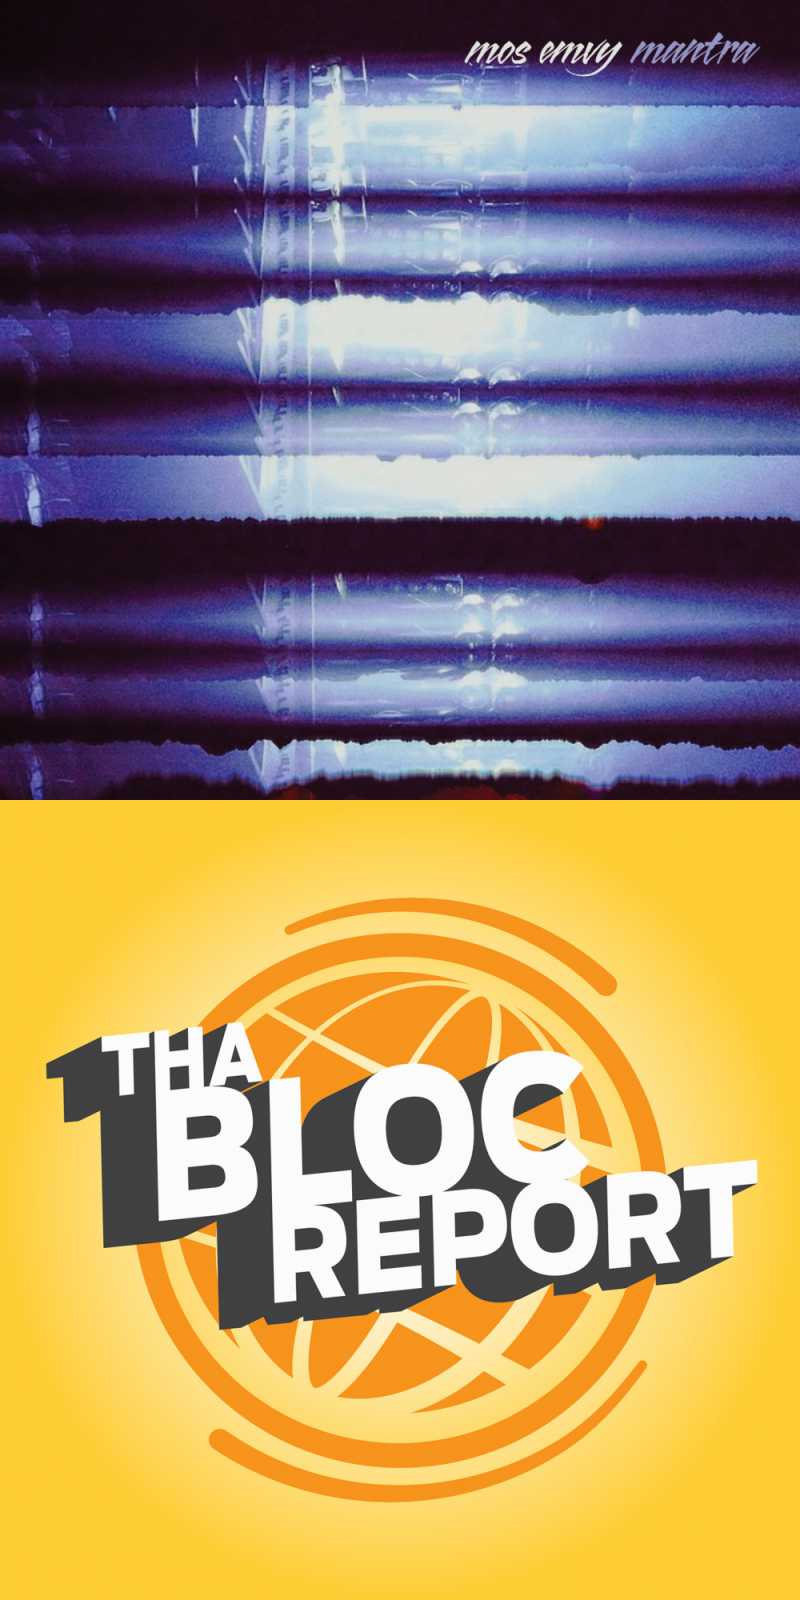 New Mos Emvy EP and the latest episode of Tha Bloc Report arrive today!